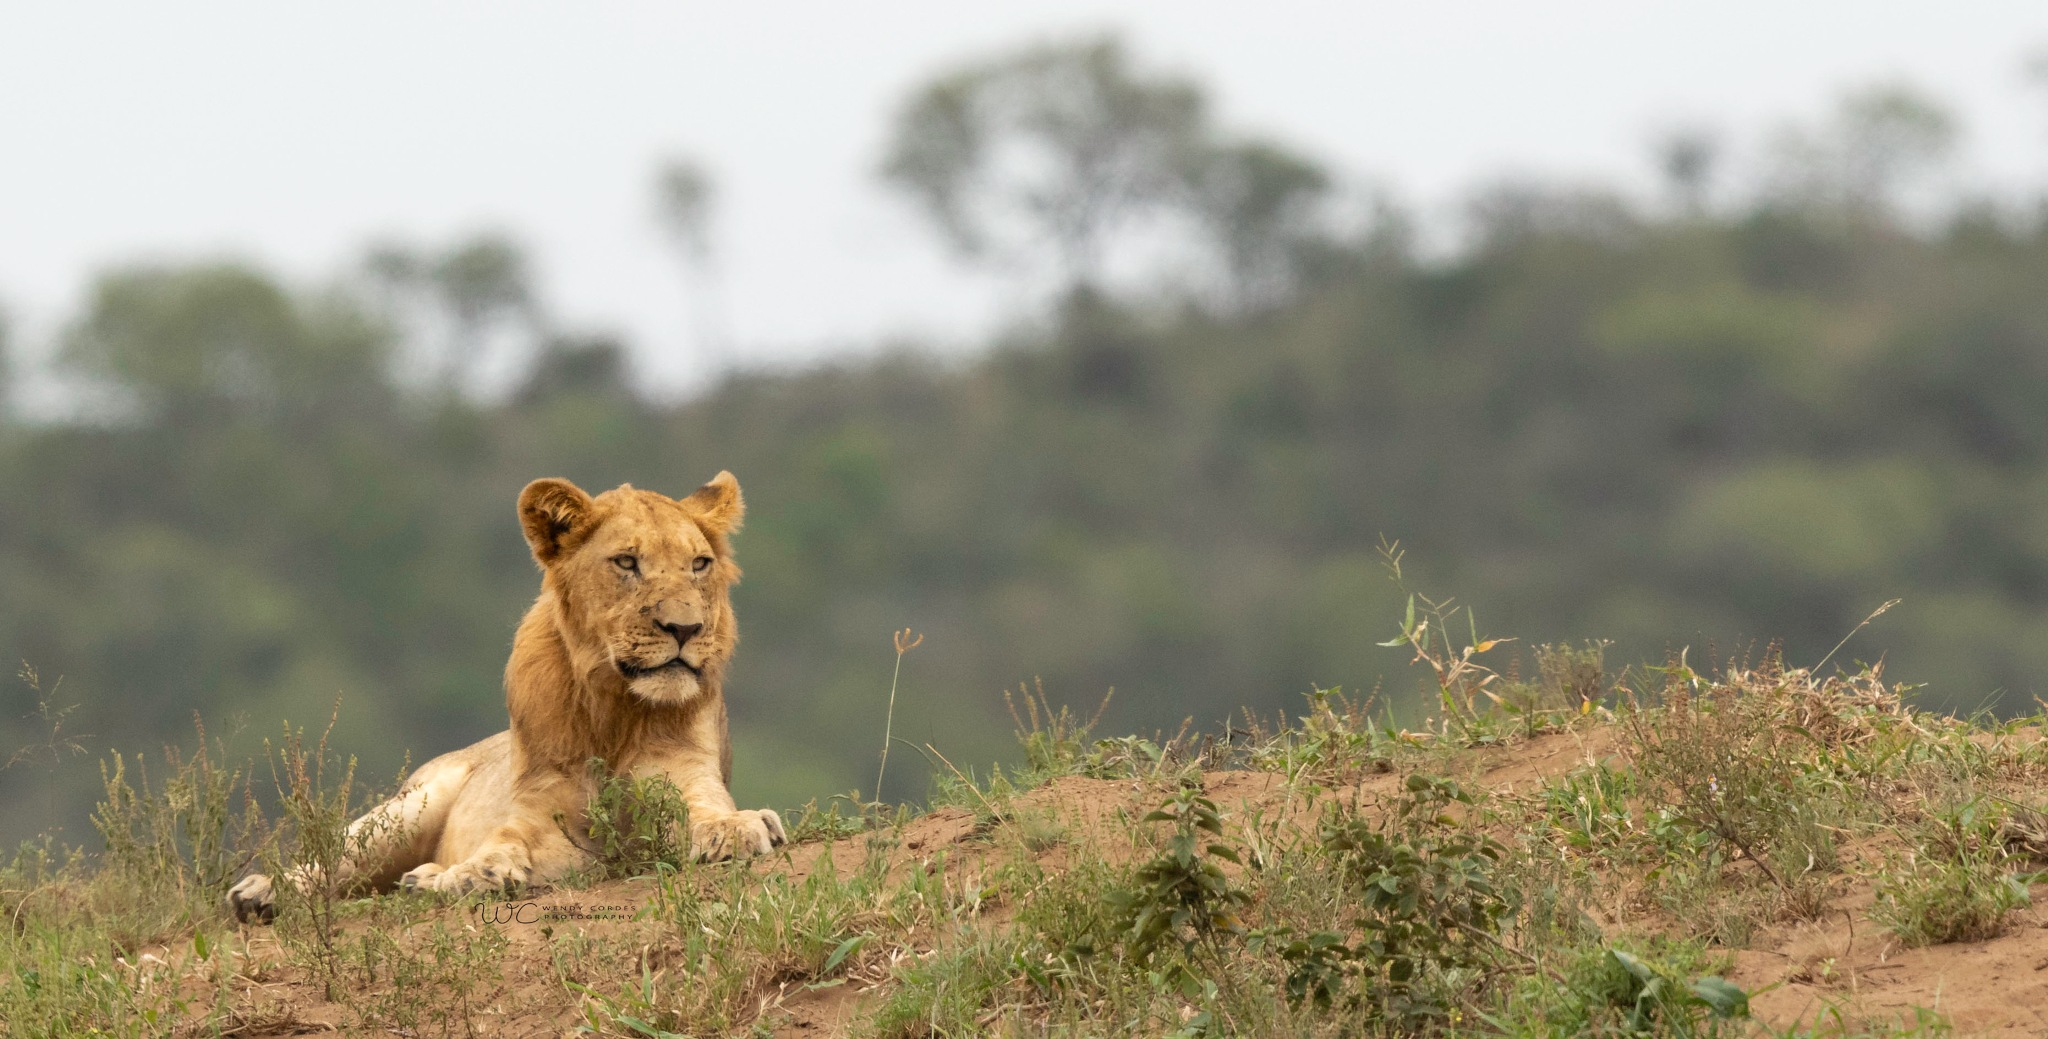 Top of the hill, not quite king of the jungle! by Wendy Cordes